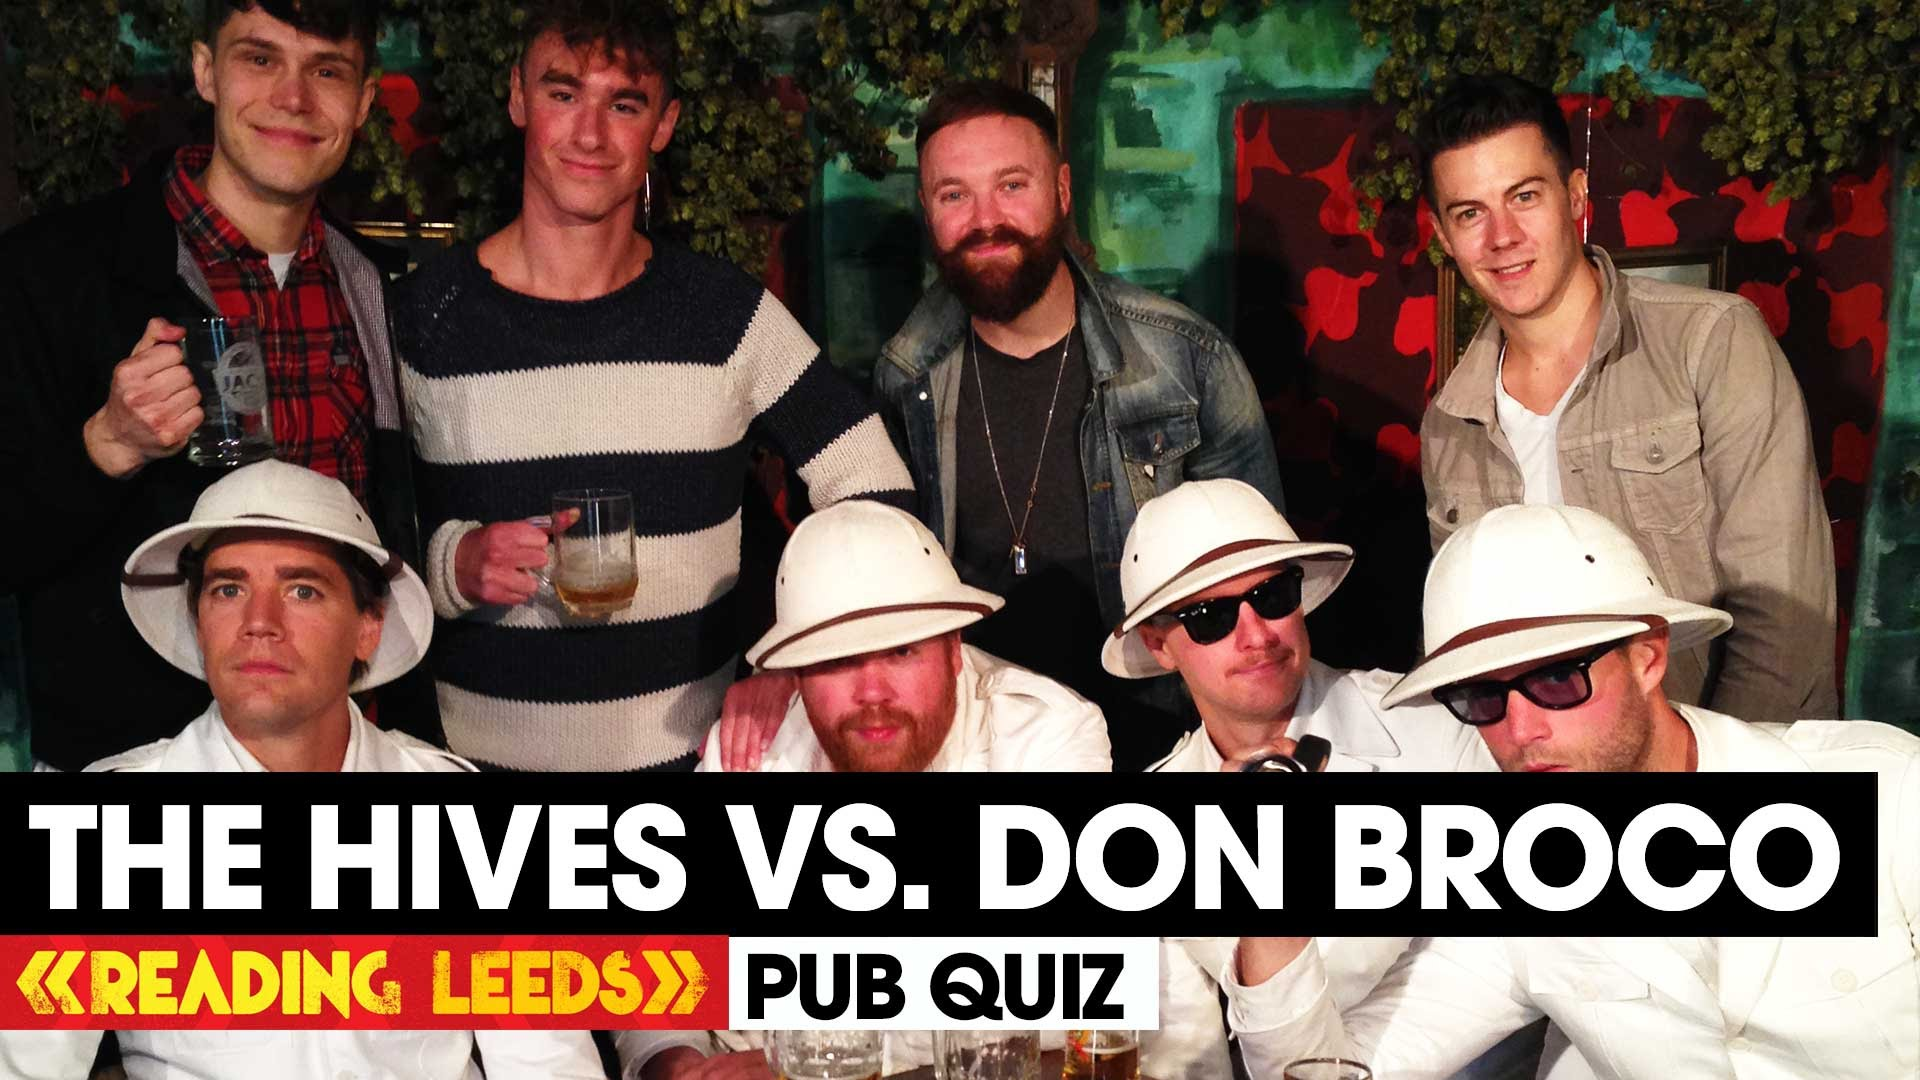 Last weekend the ultimate pub quiz battle took place between DON BROCO and The H…